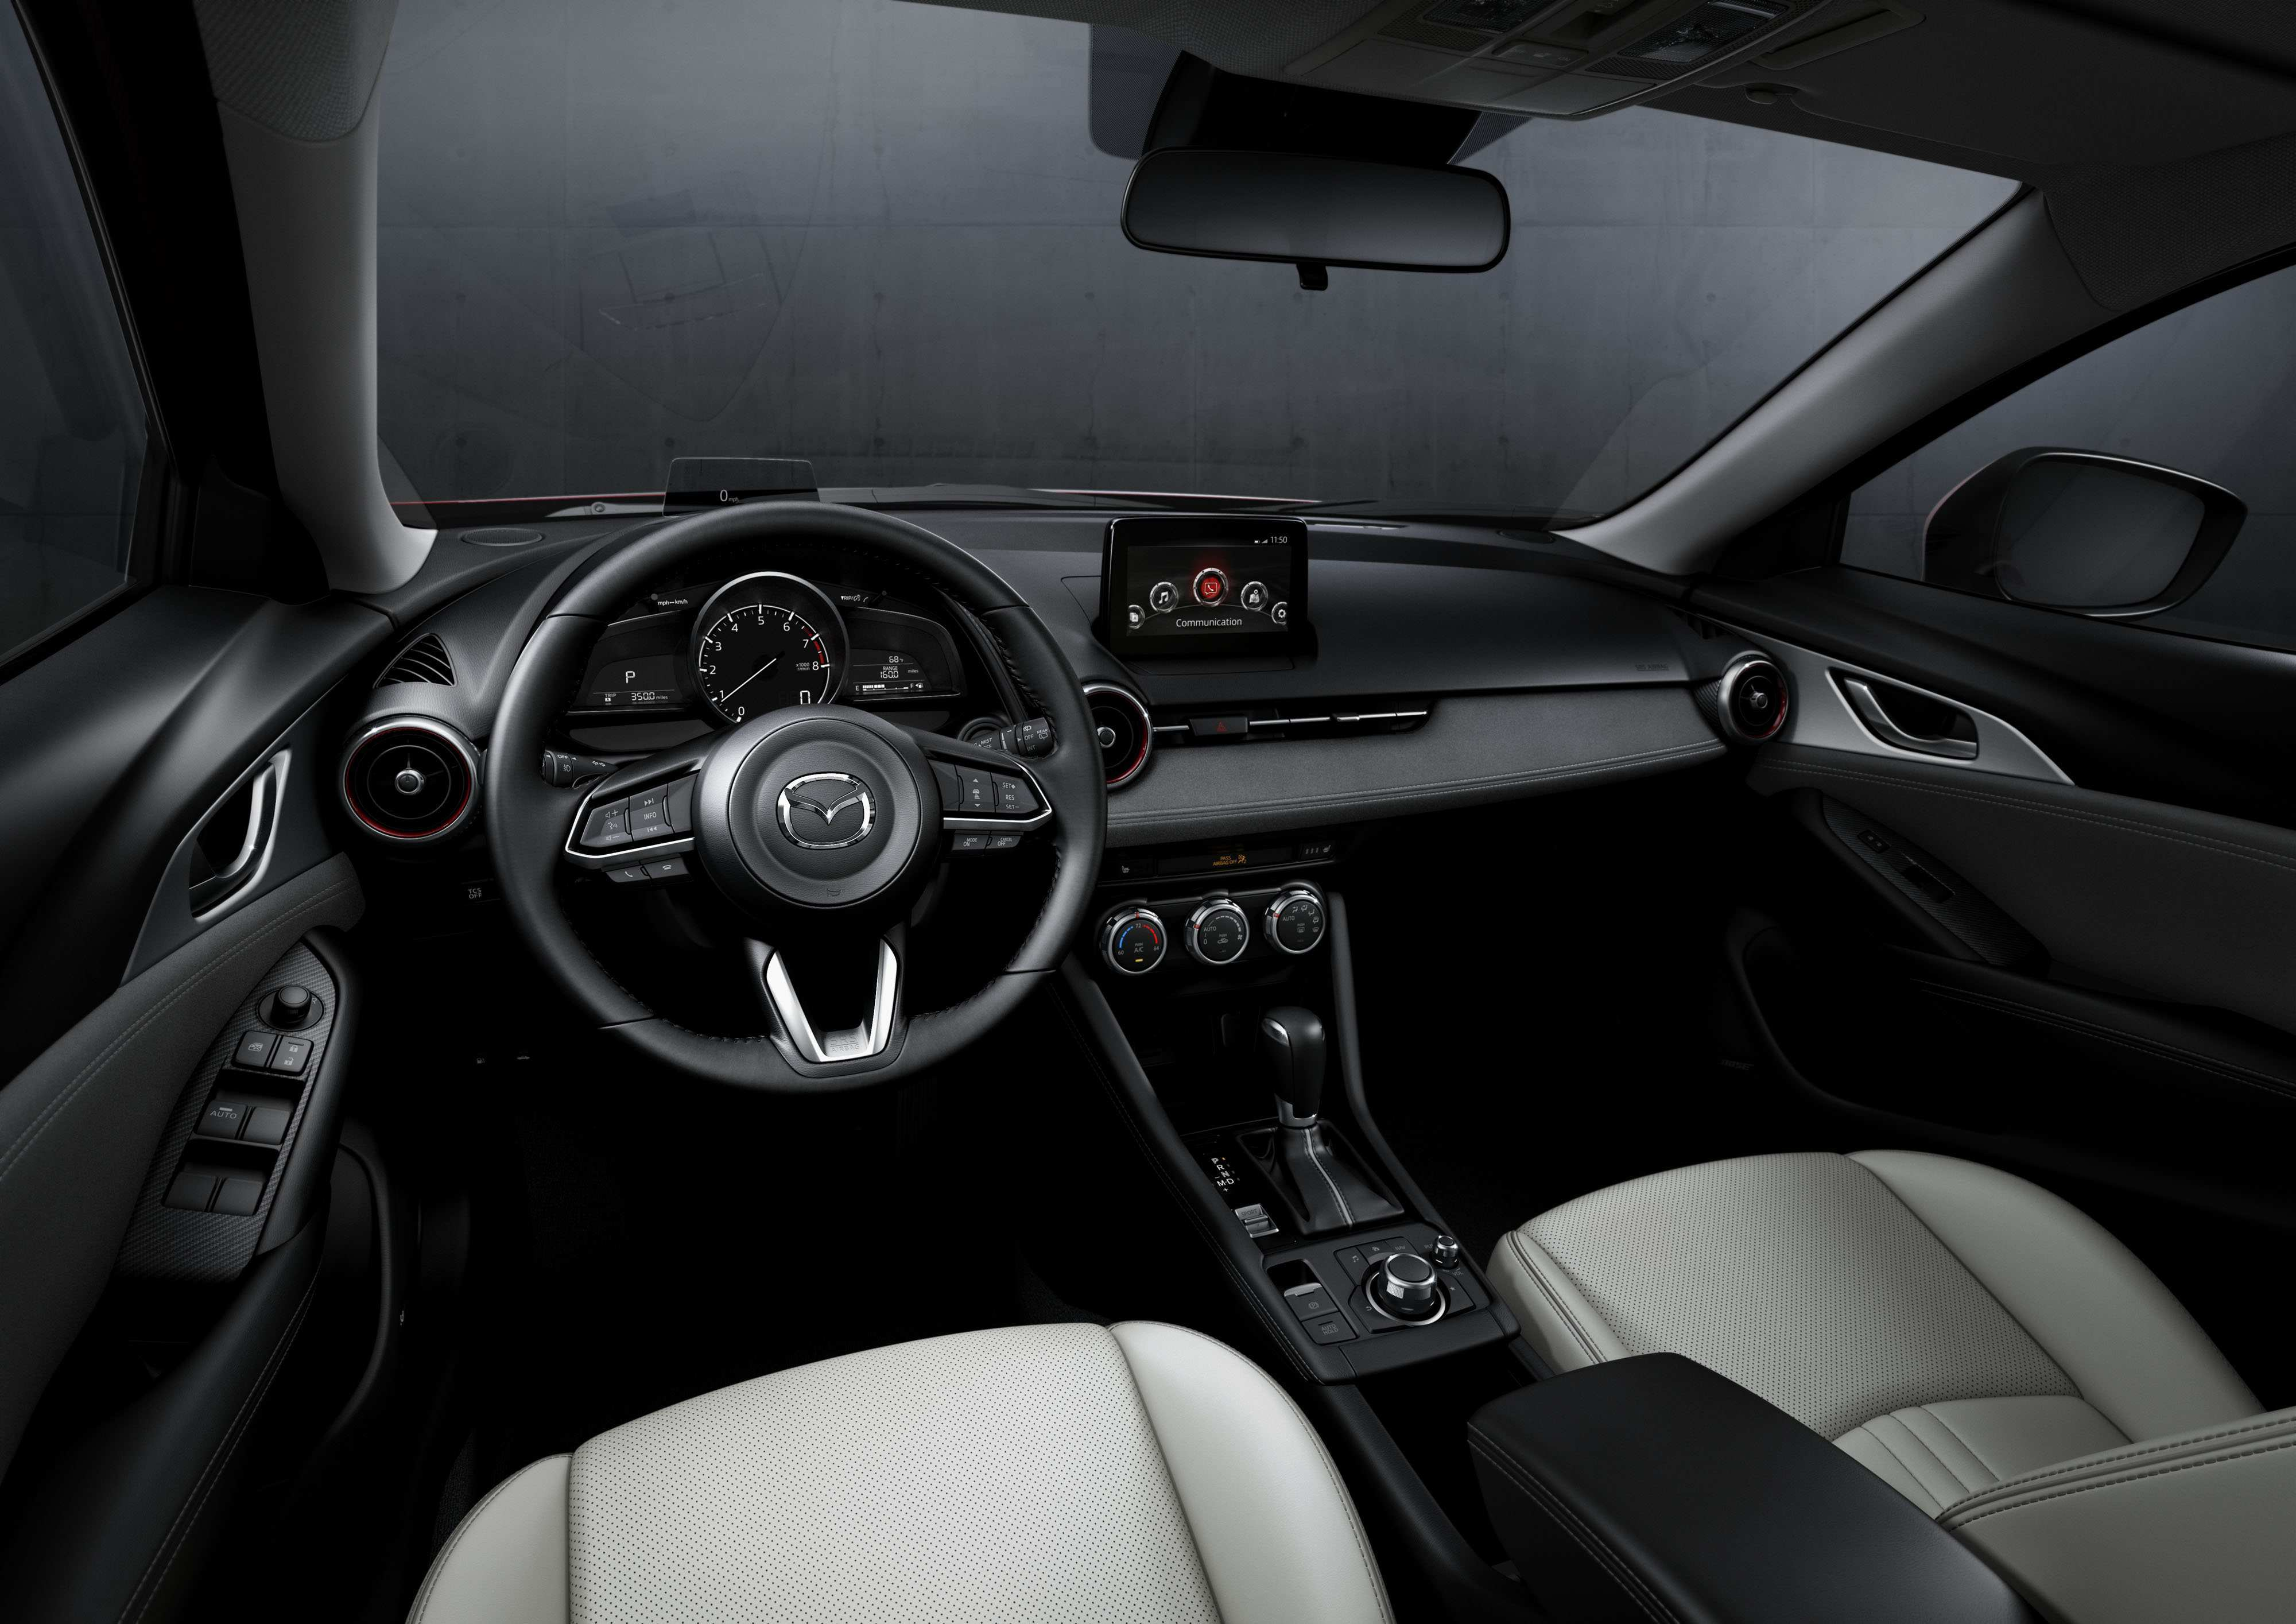 72 Gallery of The Mazda 2019 Engine New Interior Style by The Mazda 2019 Engine New Interior